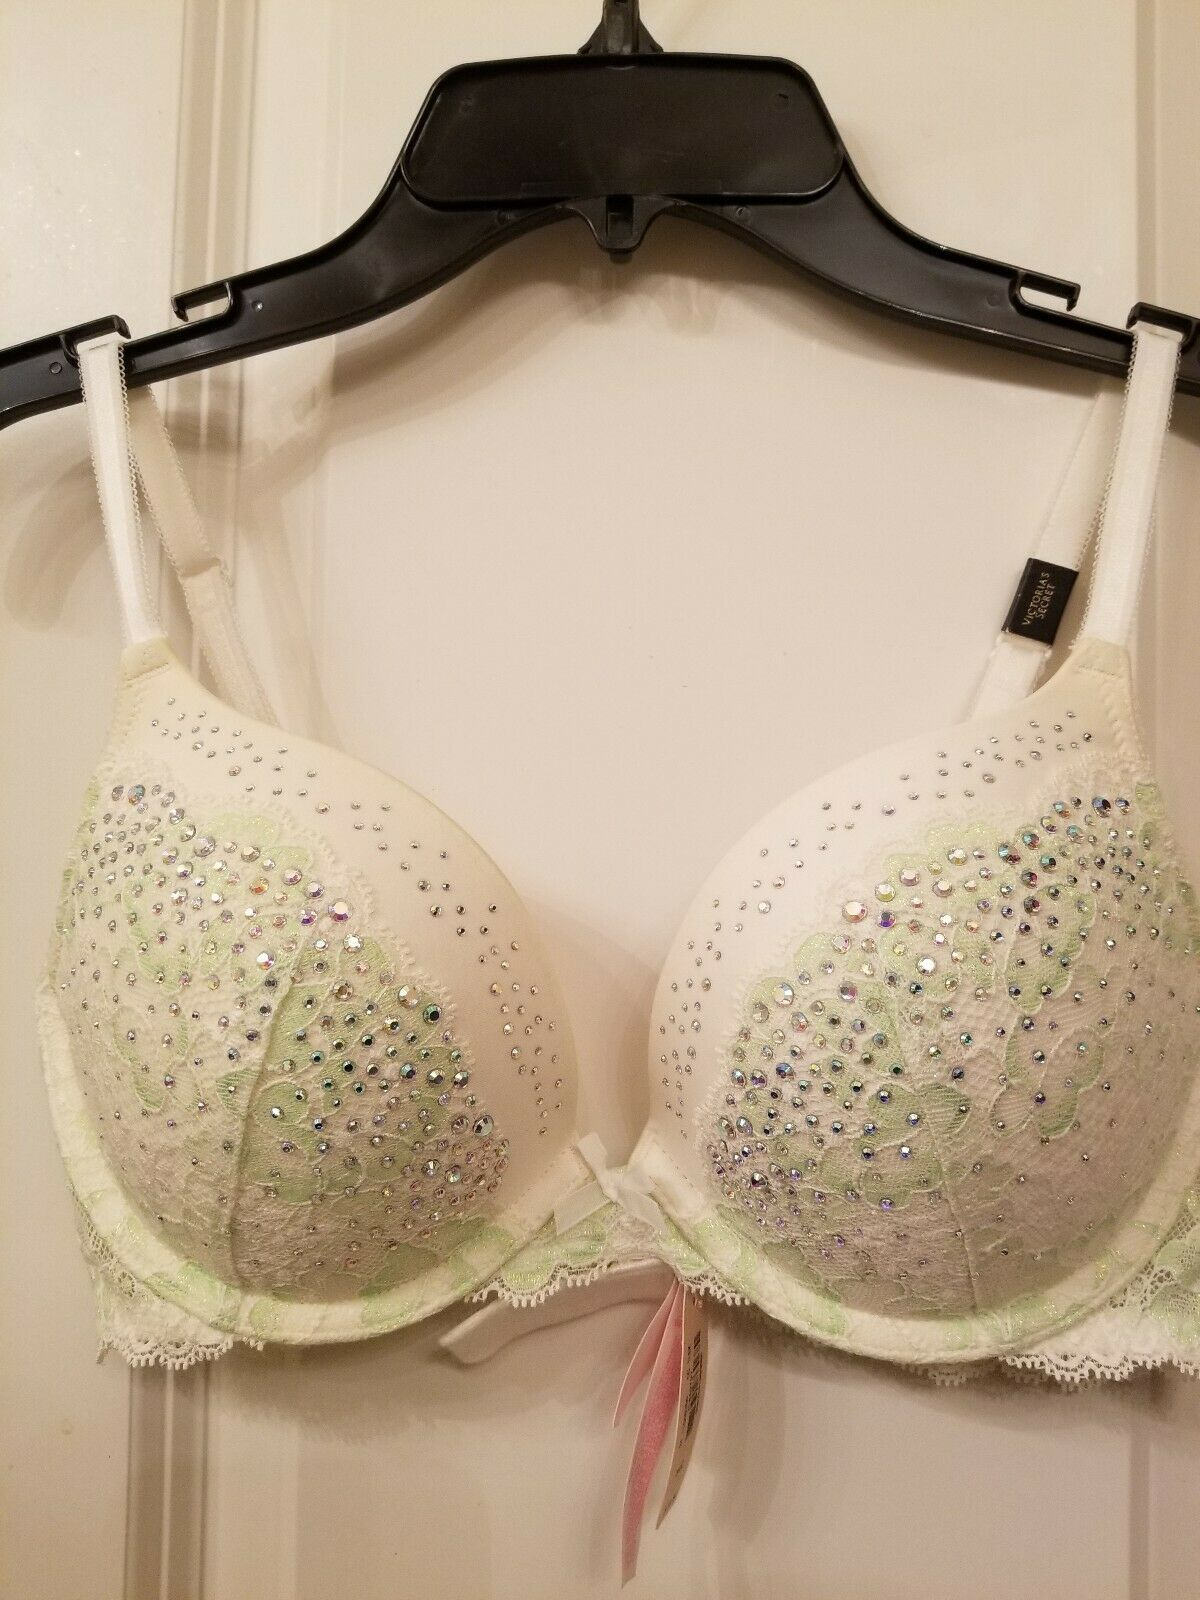 Victorias Secret DREAM Angels Green Shimmer Lace Push Up Without Padding Bra 38 C